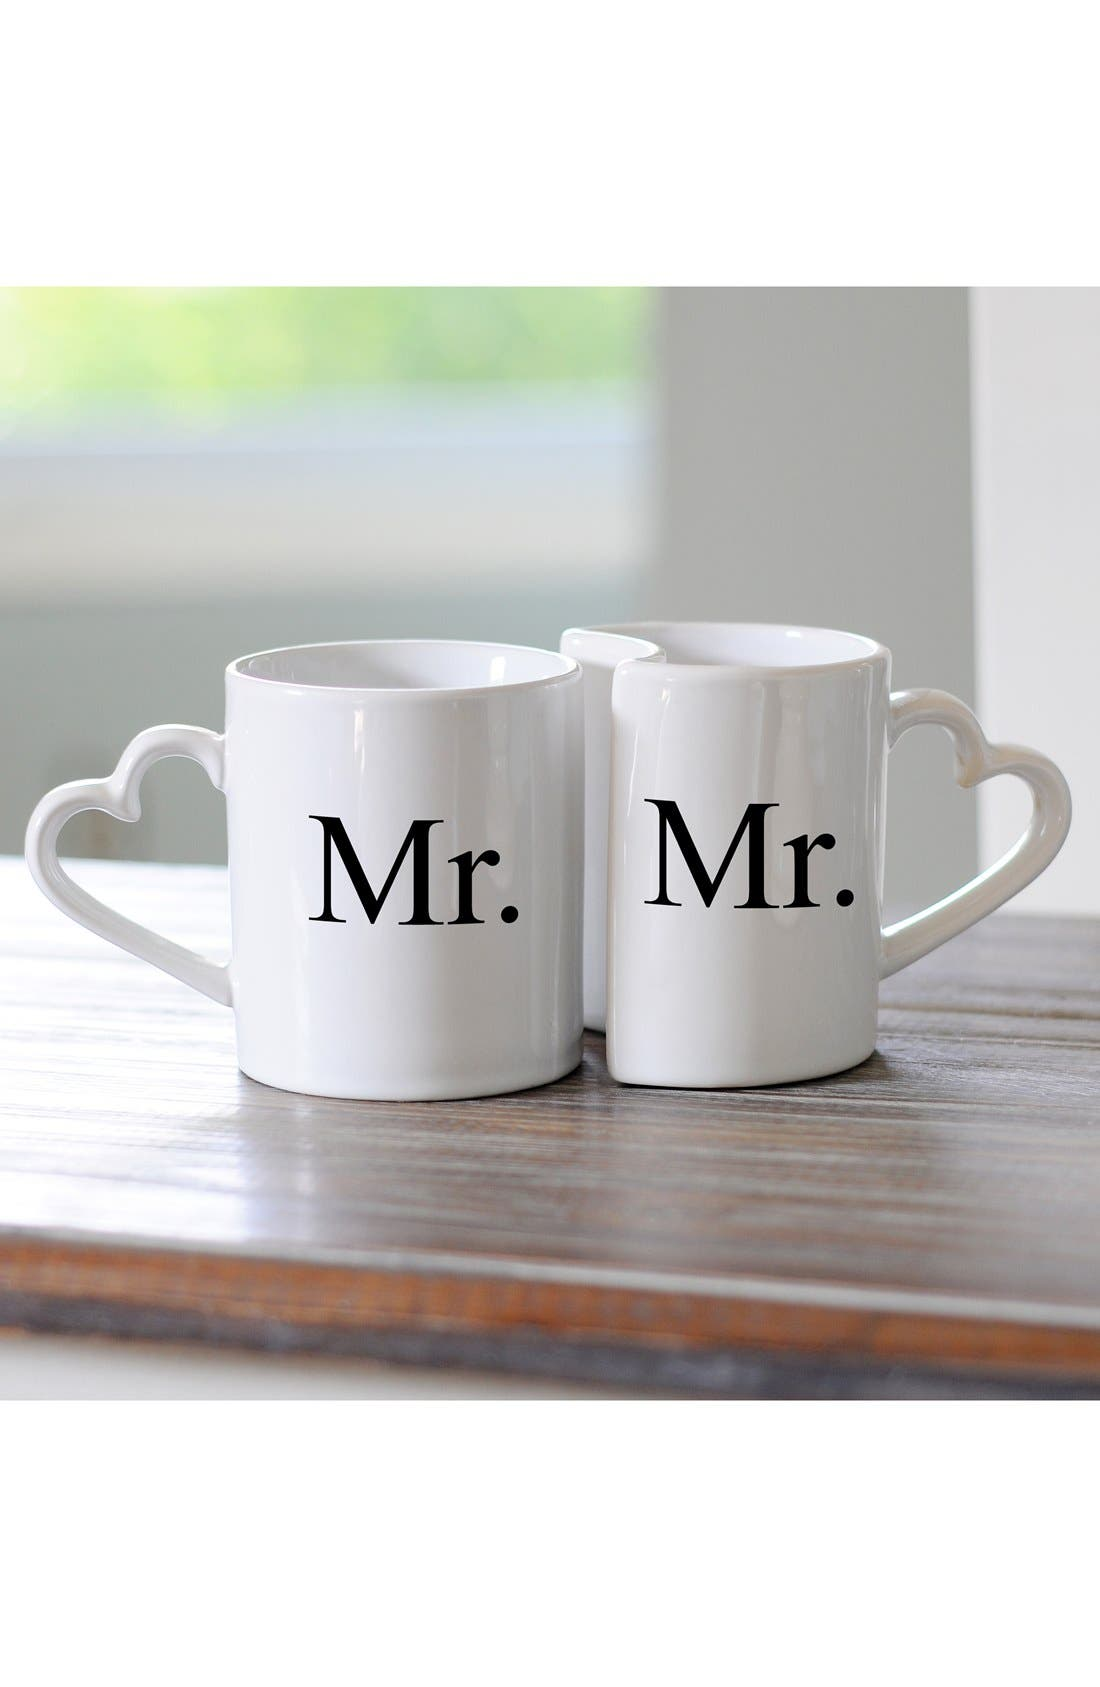 'For the Couple' Ceramic Coffee Mugs,                         Main,                         color, 101